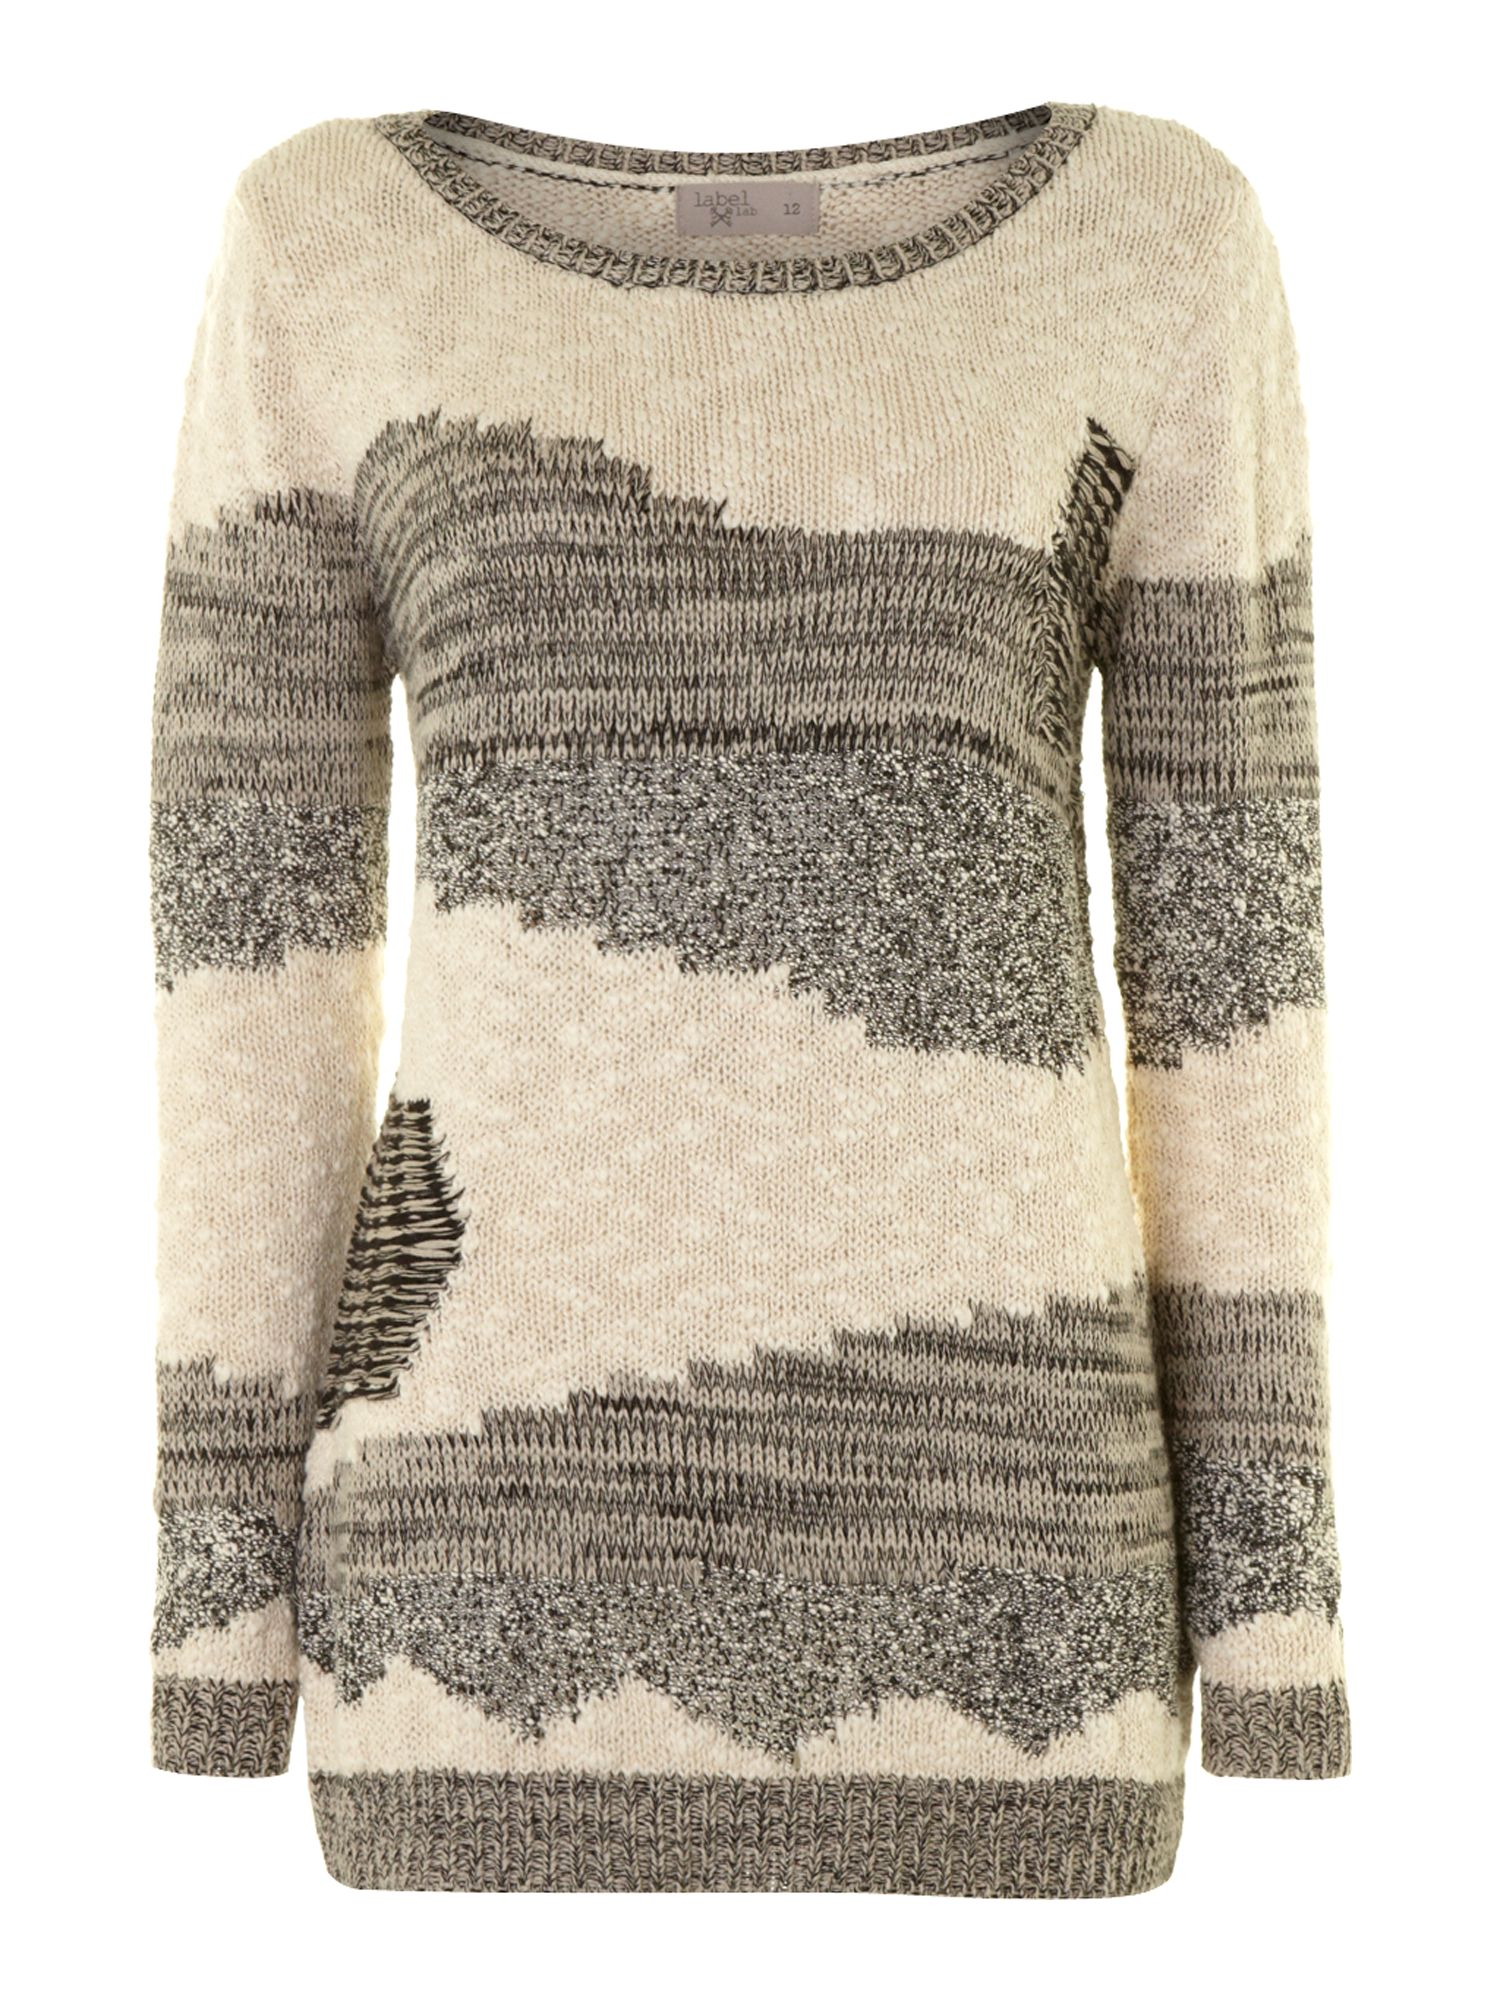 Textured patchwork knit jumper